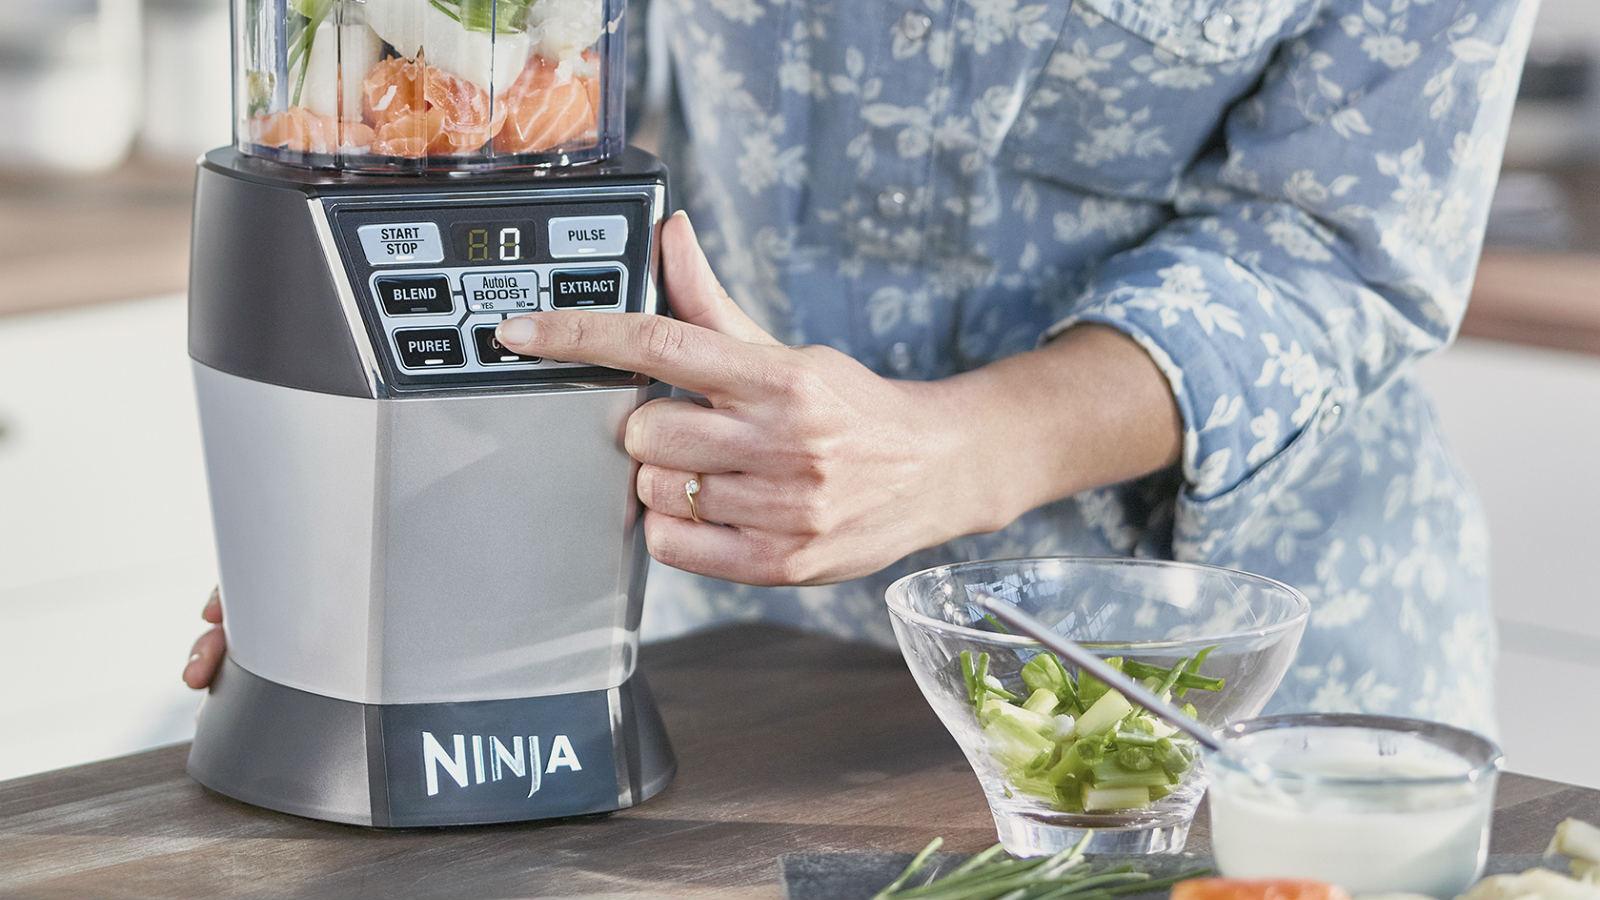 nn100uk-nutri-ninja-ninja-bowl-duo-1